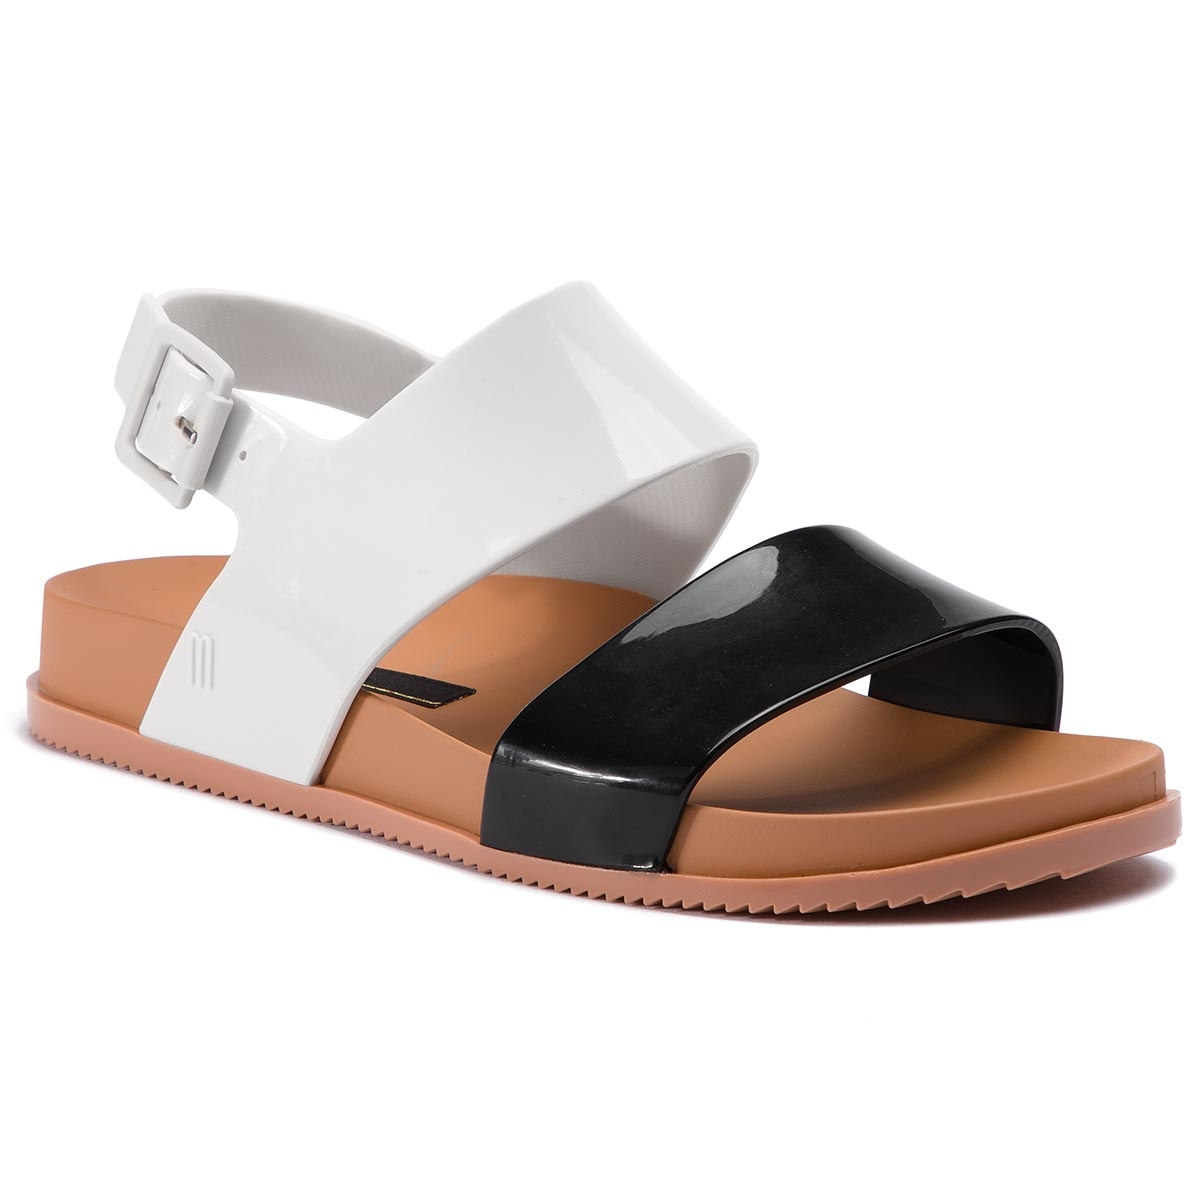 Sandale Melissa - Cosmic Sandal Iii Ad 32495 Black/White/Brown 52909 imagine epantofi.ro 2021